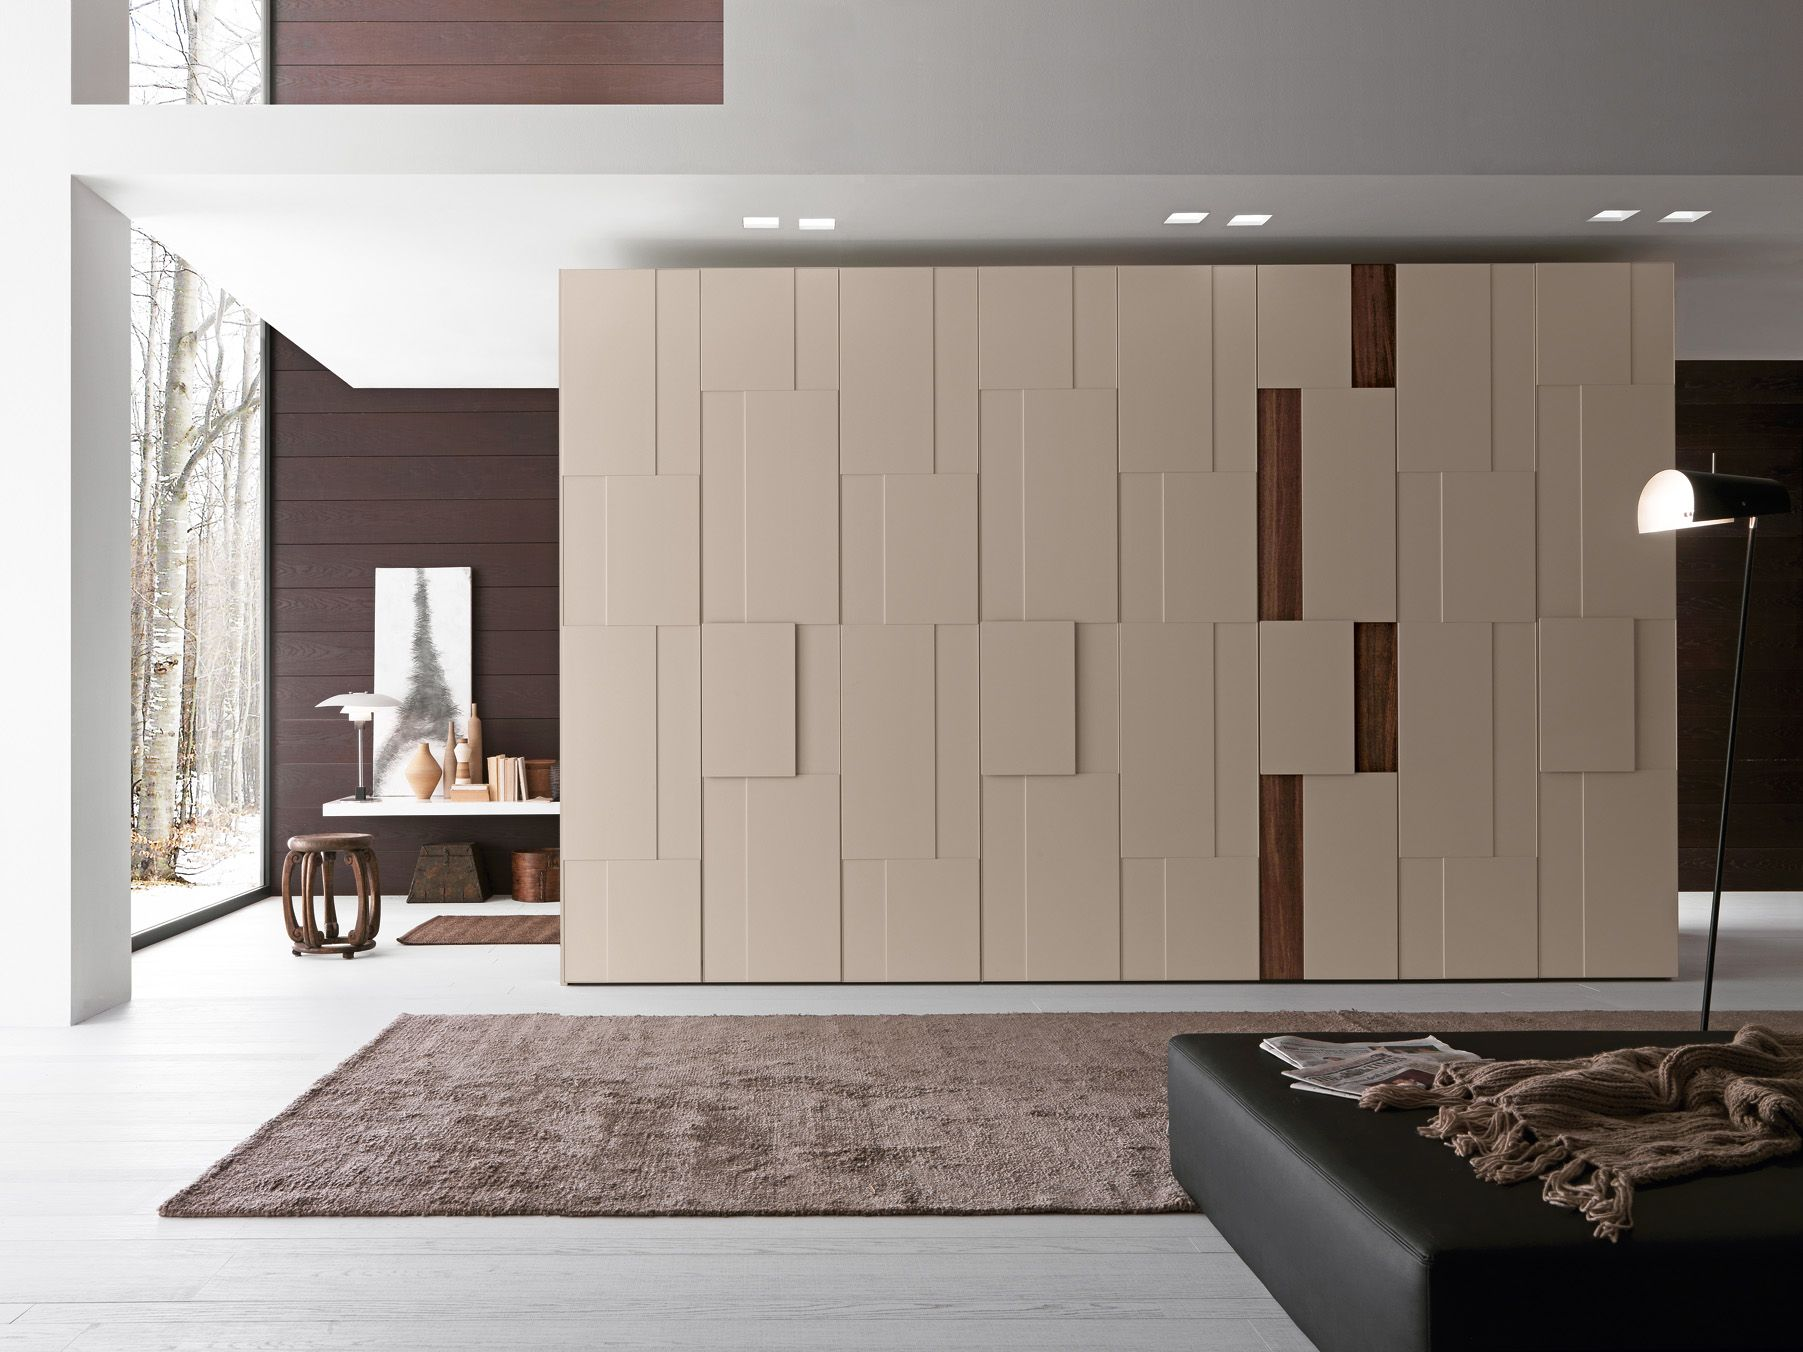 Brown Theme Interior Design for Wardrobe for Bungalow Interior